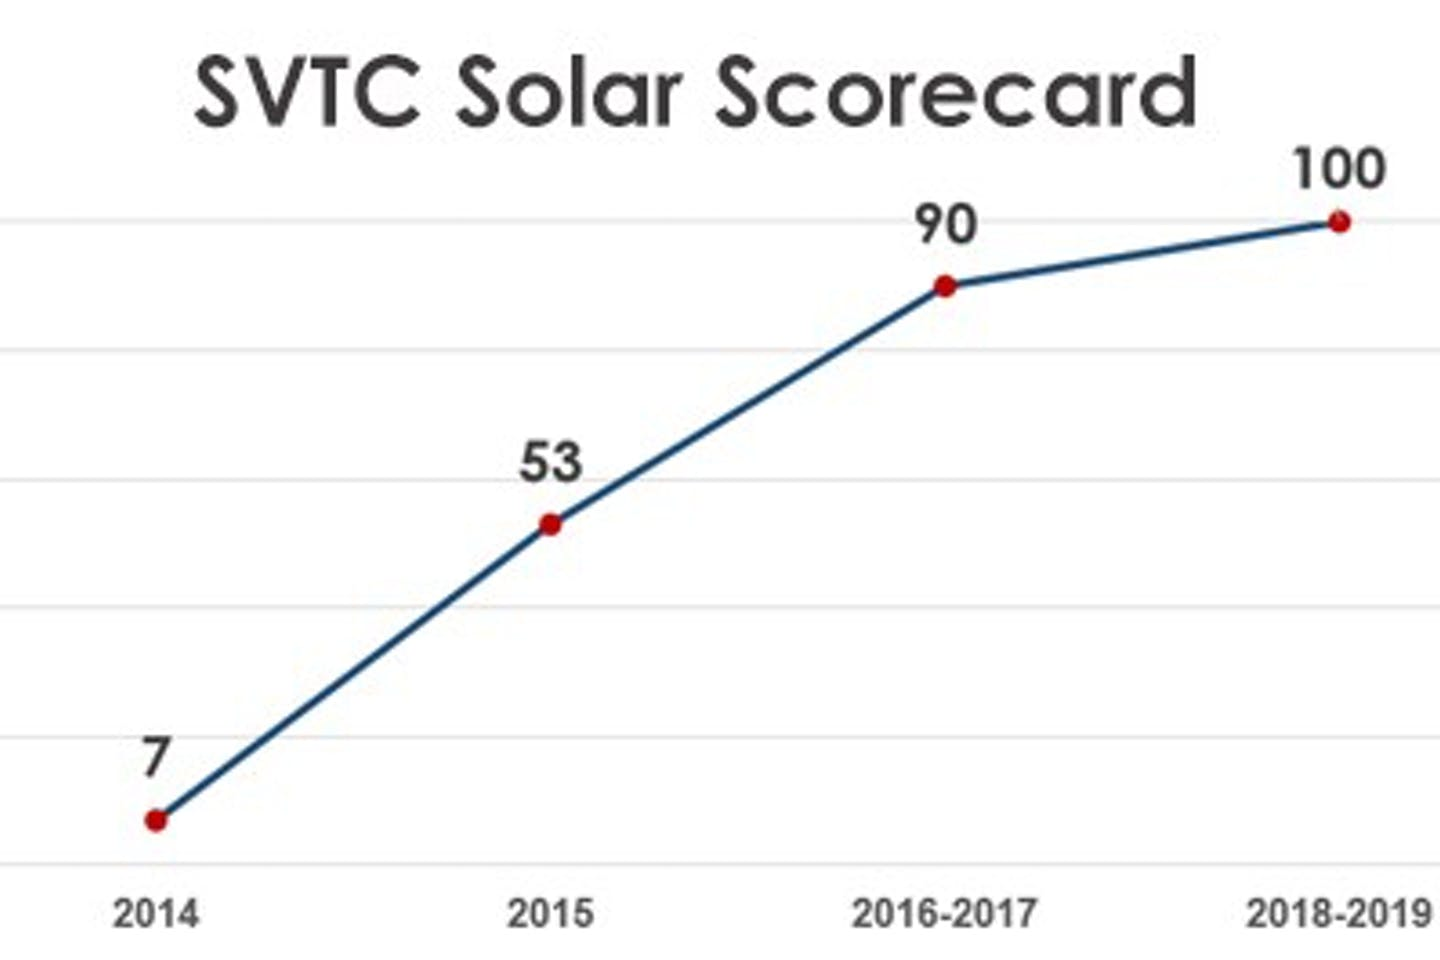 JinkoSolar is number 1 on Silicon Valley Toxics Coalition's latest scorecard